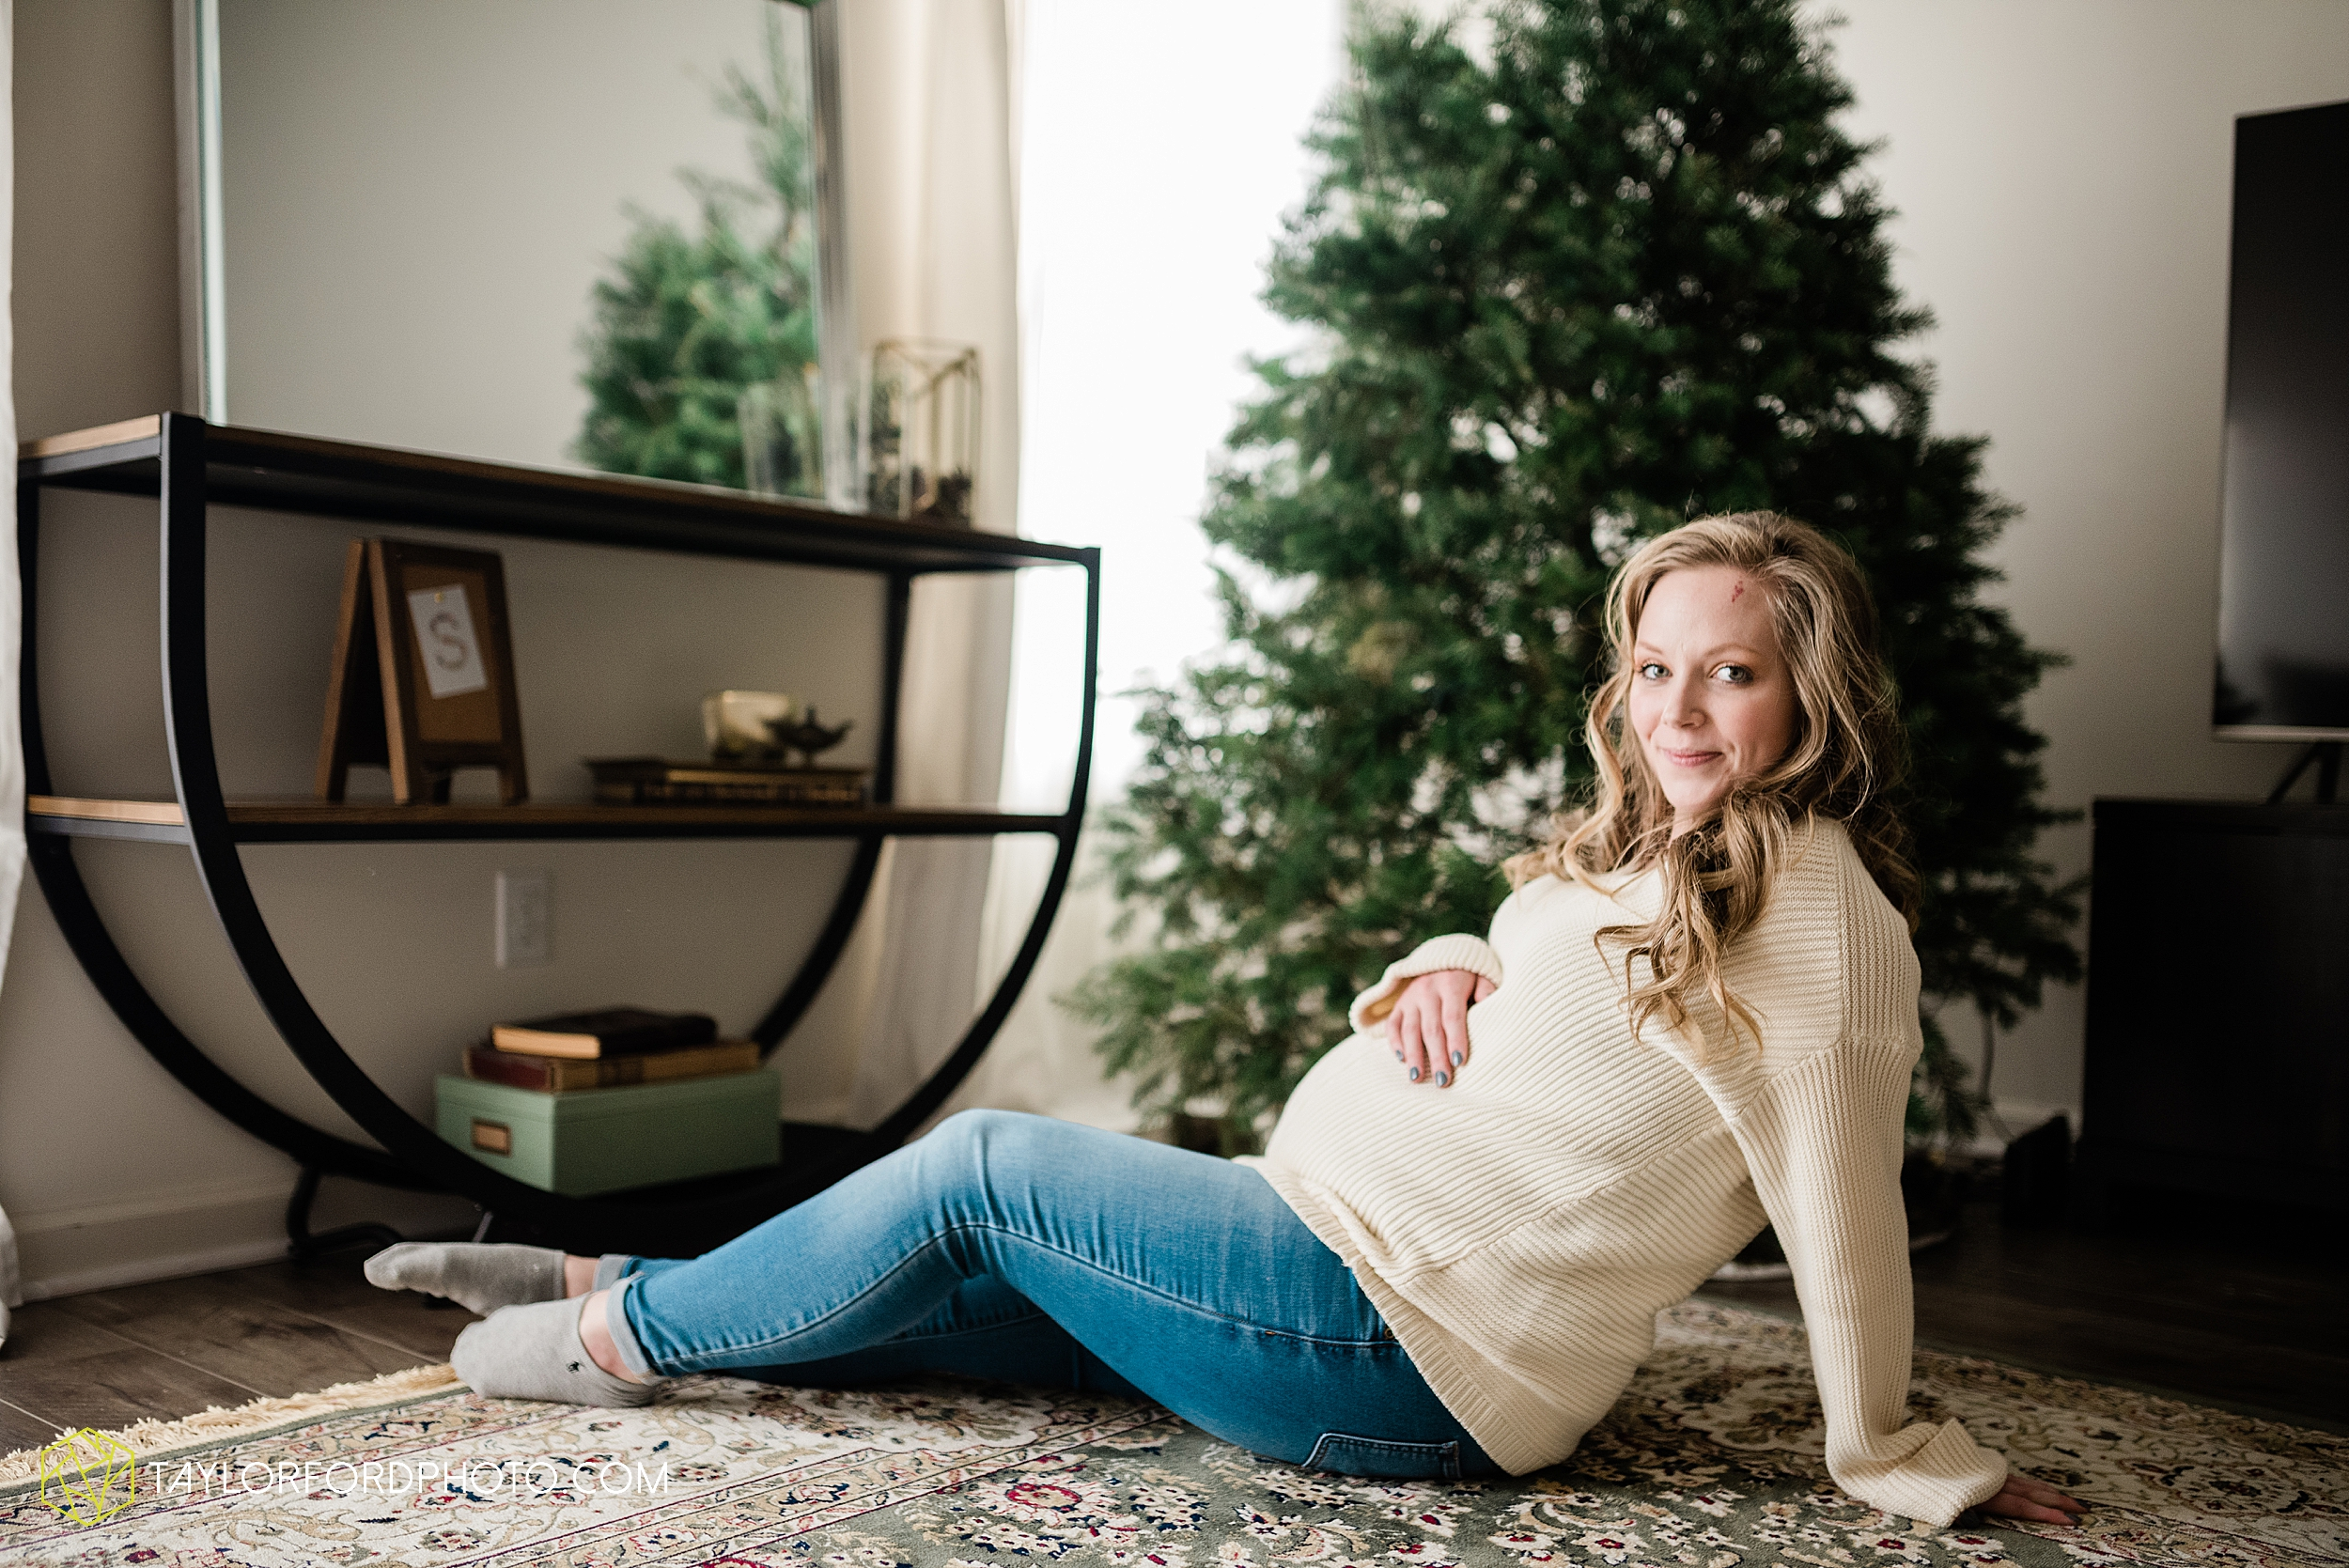 schafer-maternity-pregnant-at-home-fort-wayne-indiana-photography-taylor-ford-hirschy-photographer_2263.jpg